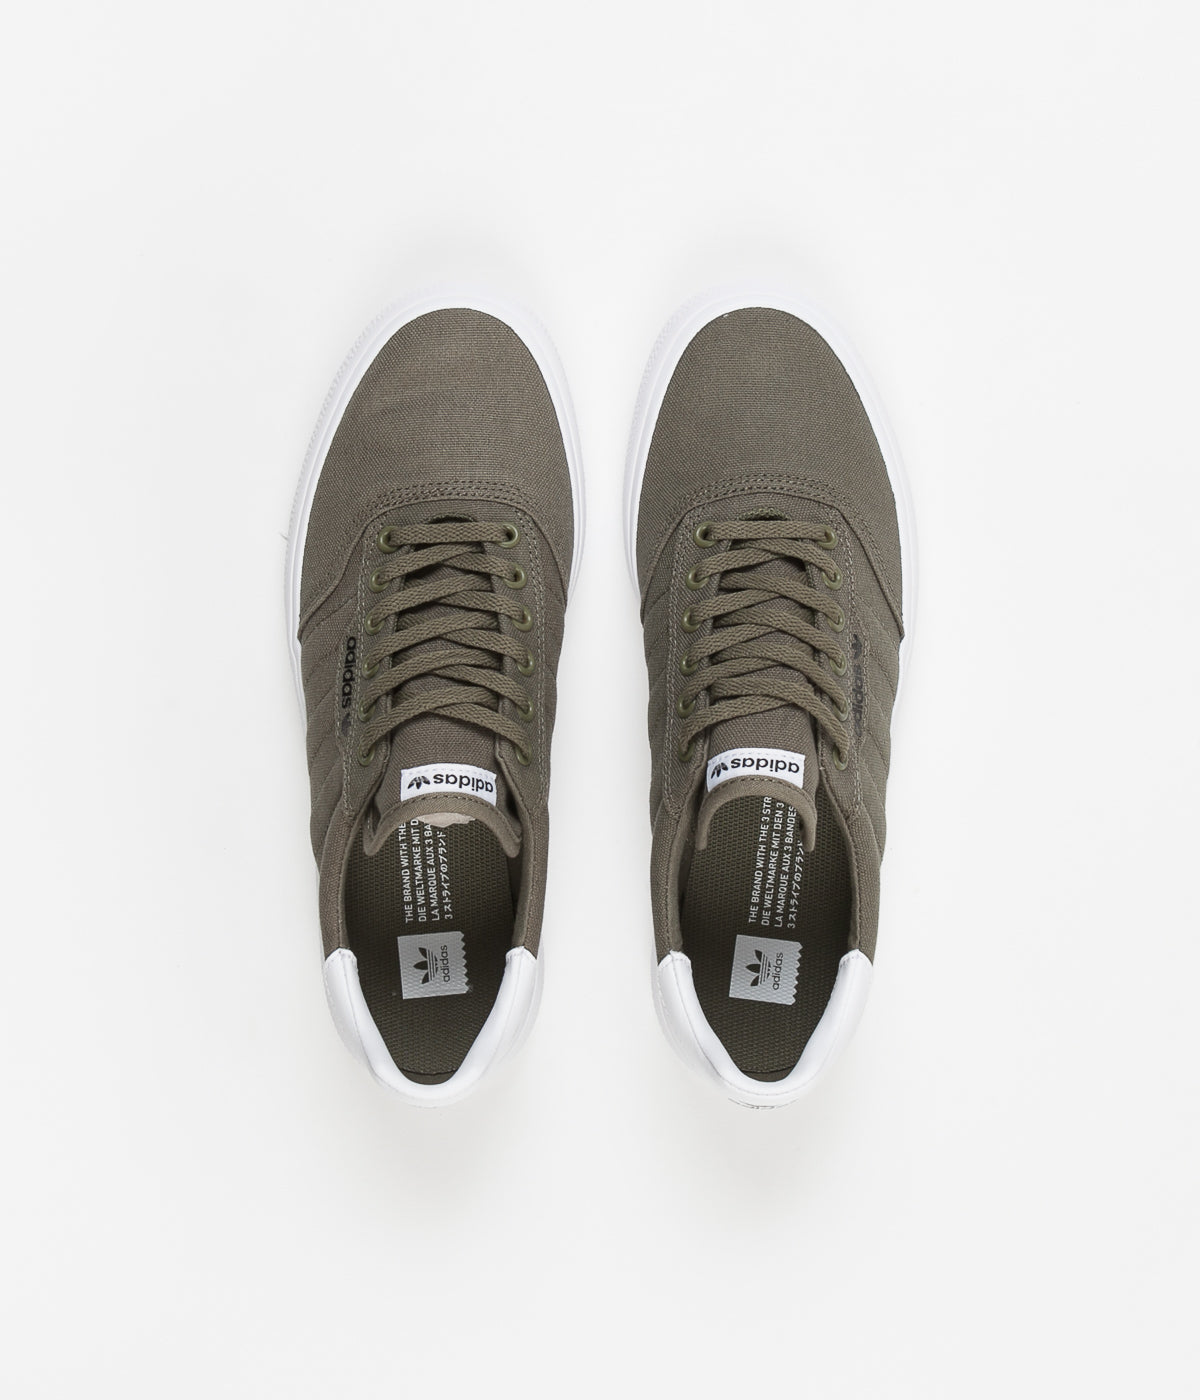 Adidas 3MC Shoes - Raw Khaki / Raw Khaki / White